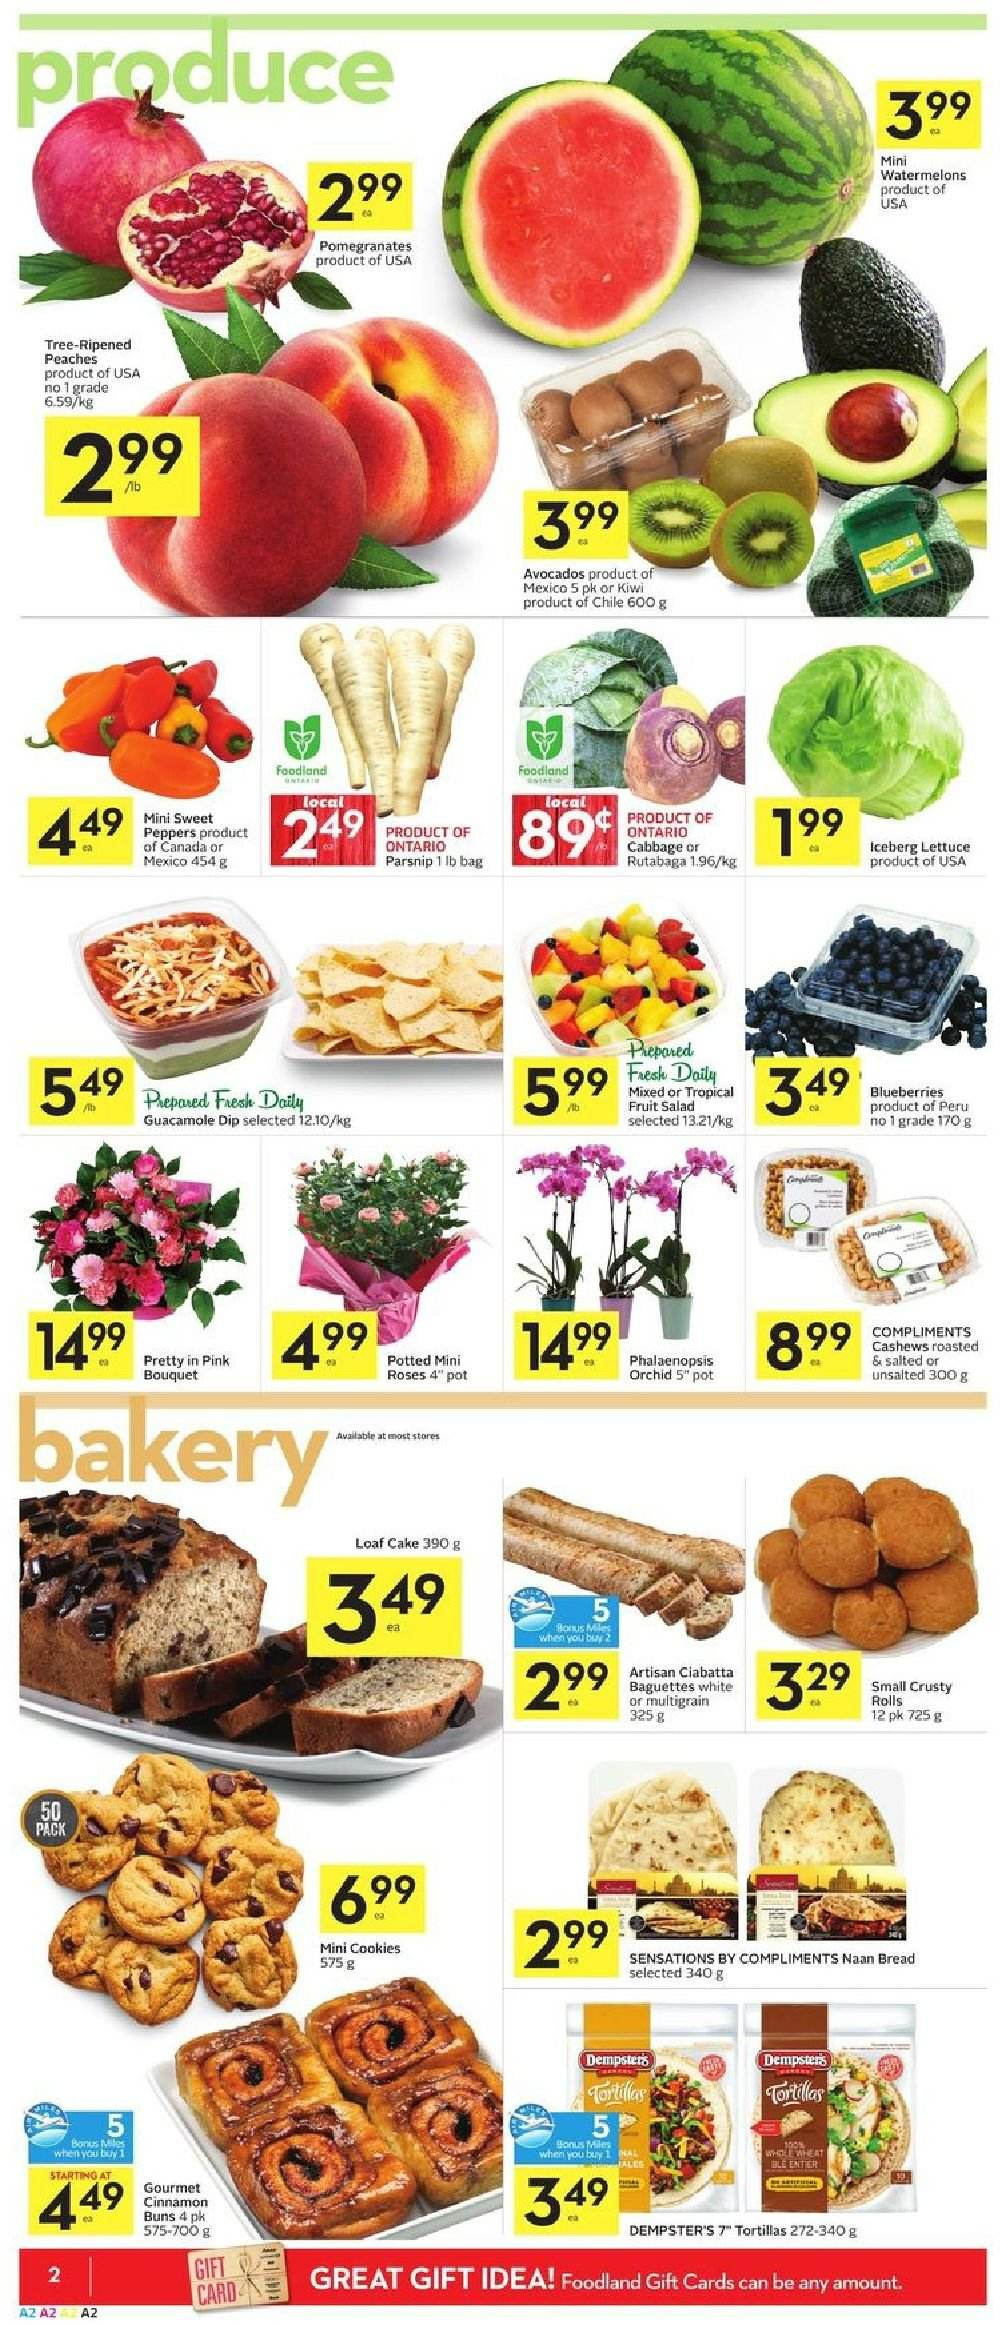 Foodland Flyer  - October 11, 2018 - October 17, 2018. Page 2.